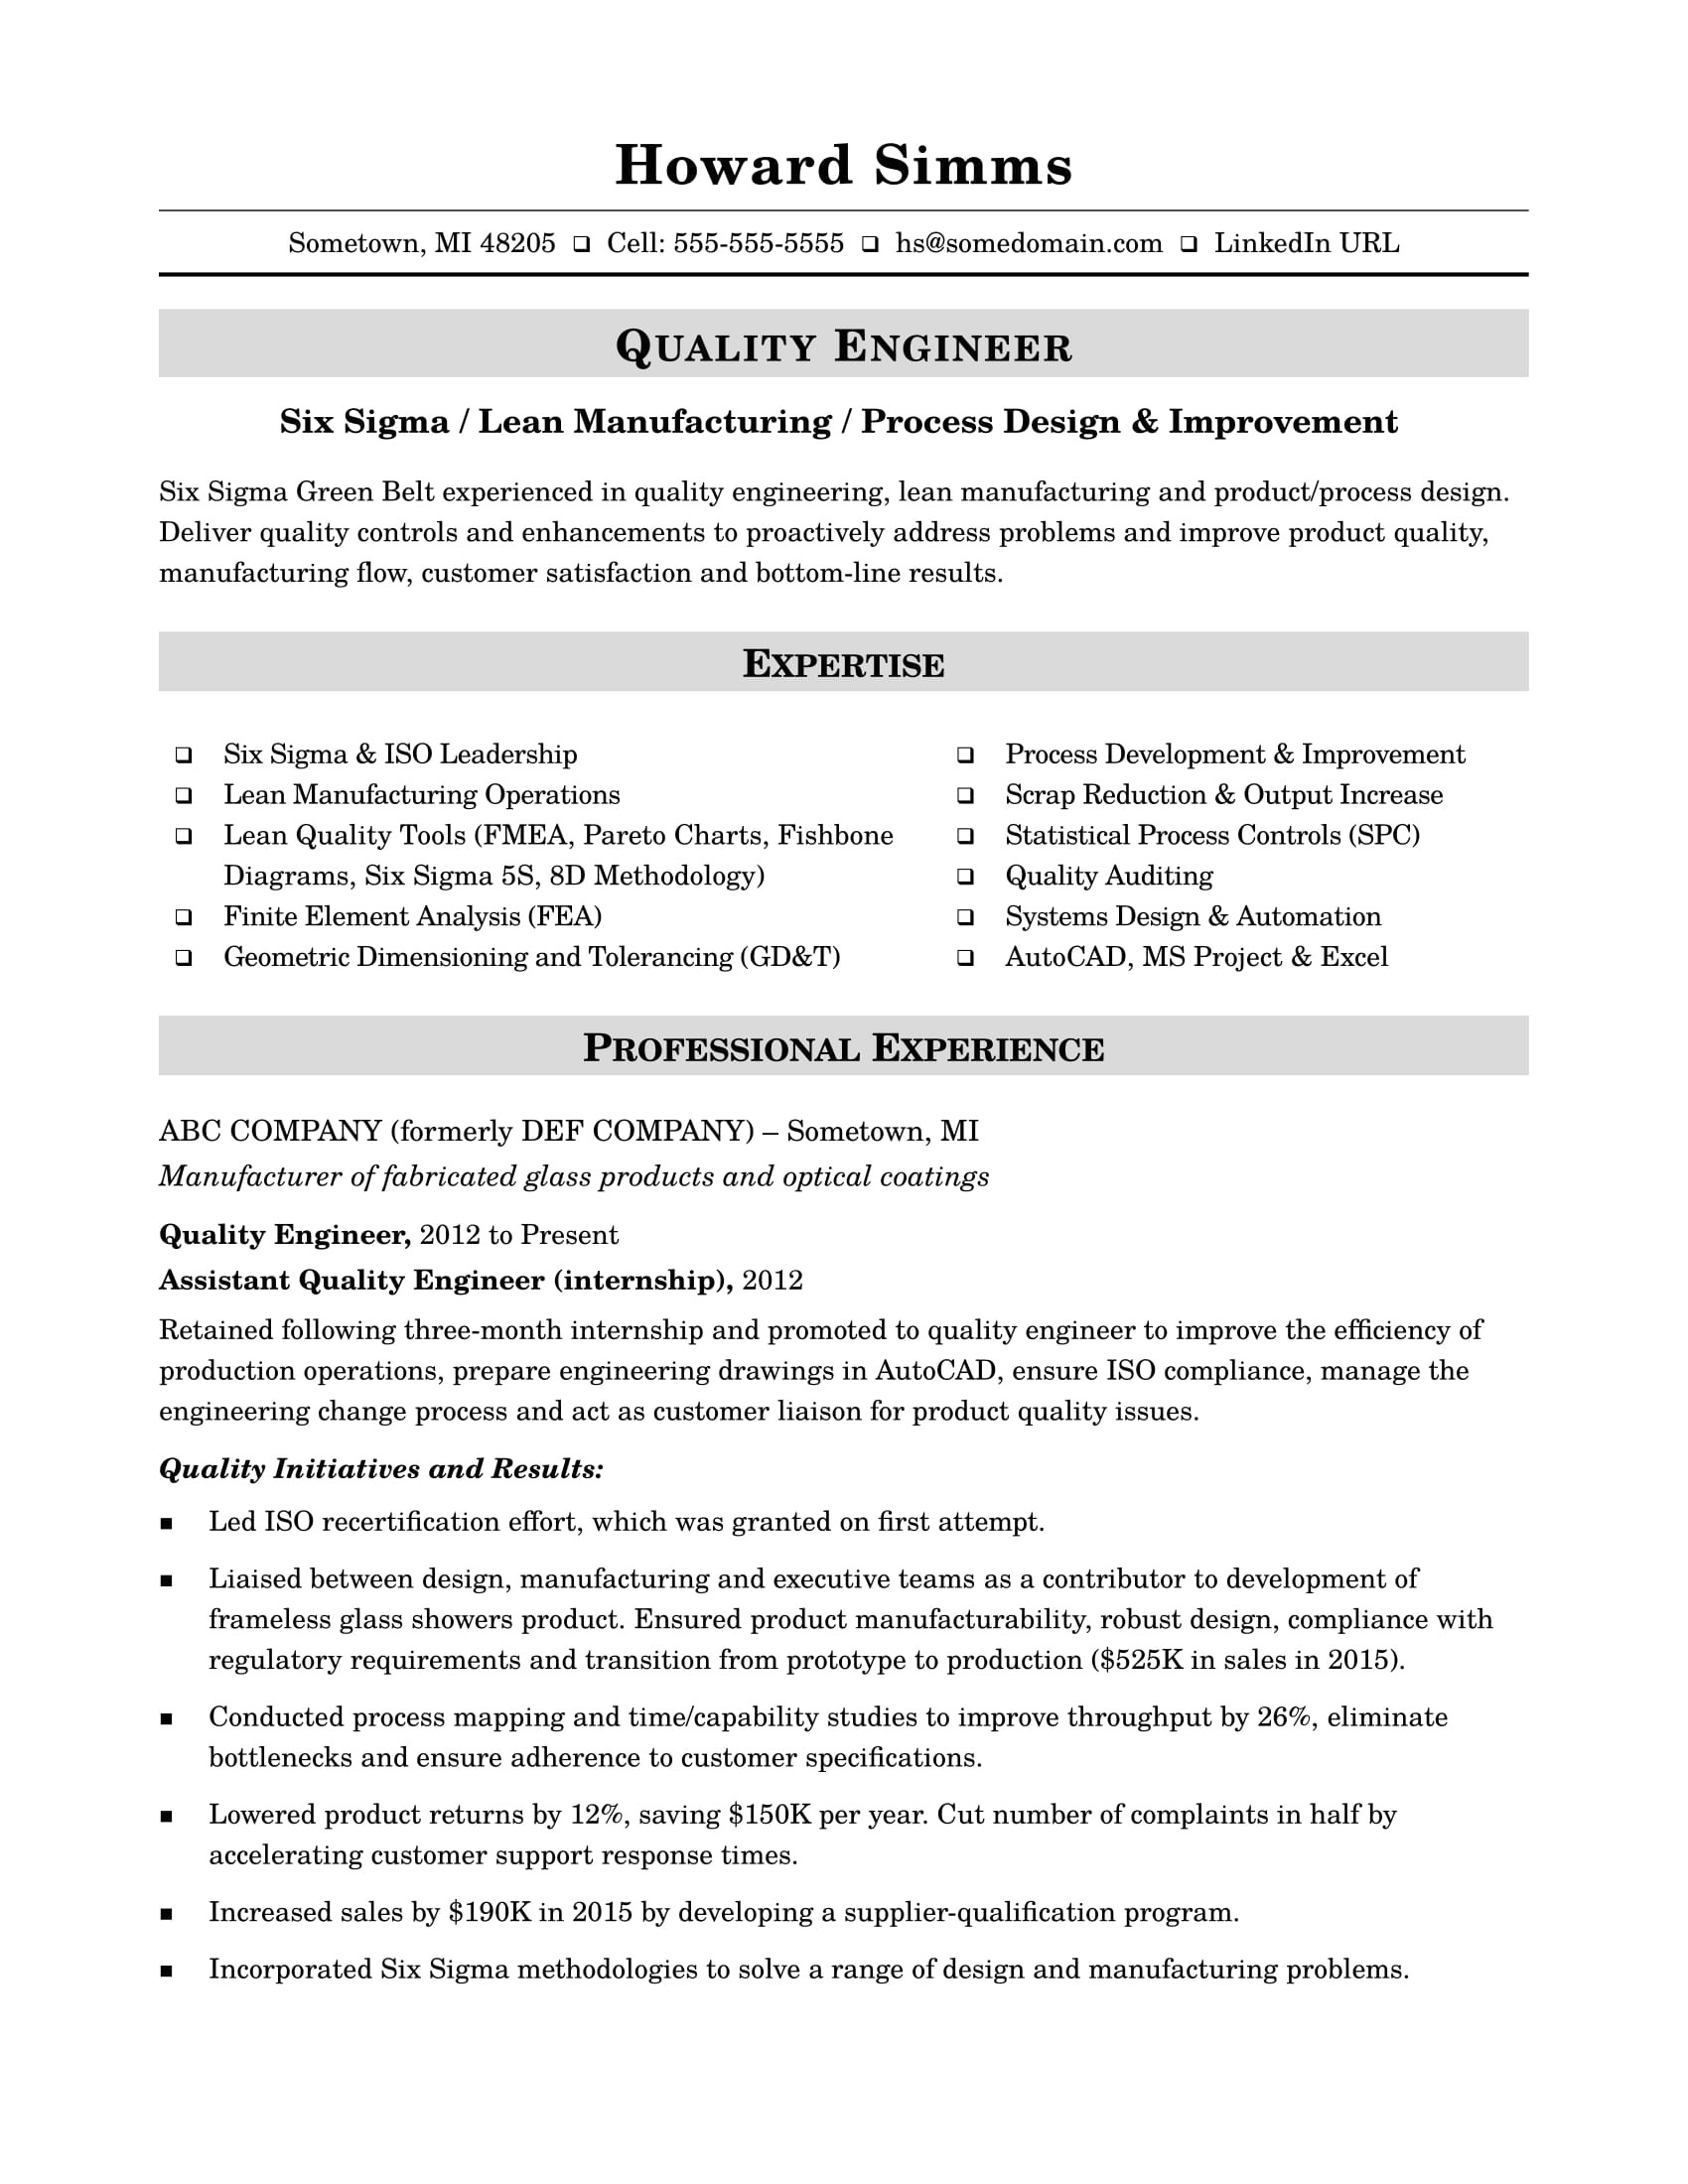 Engineer Resume Qualities Sample Resume for A Midlevel Quality Engineer Monster Com